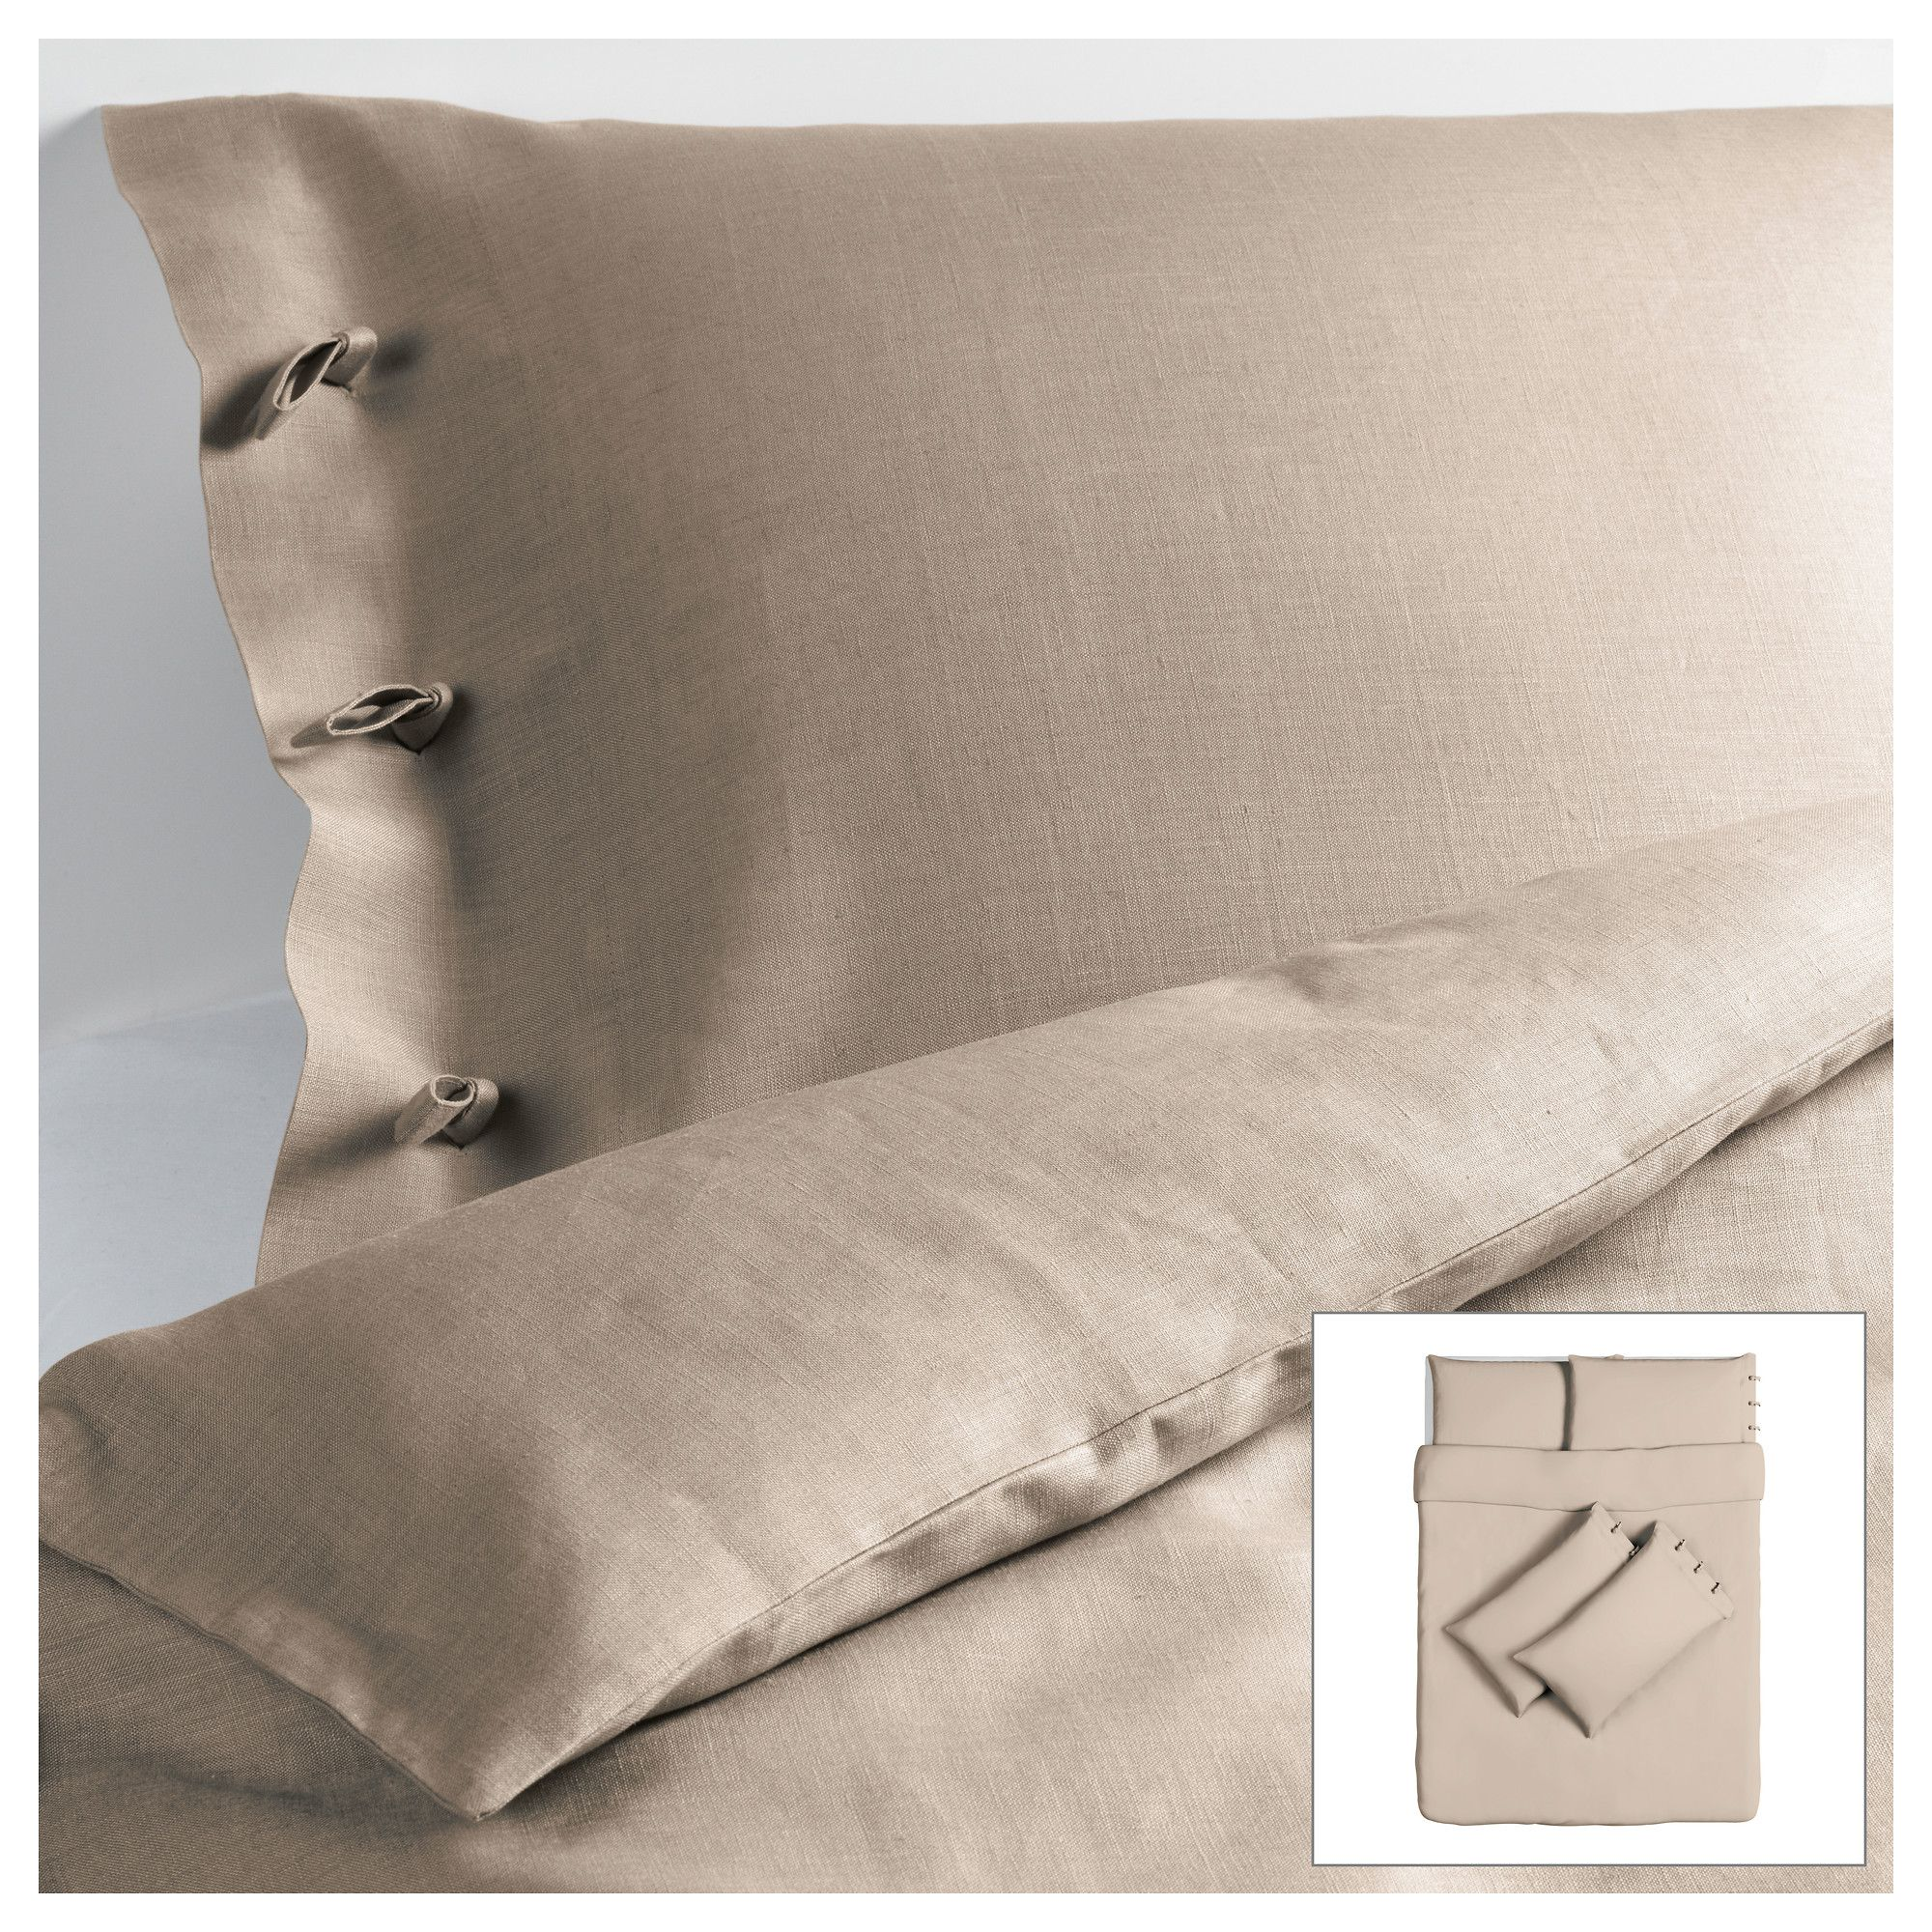 LINBLOMMA Quilt cover and 4 pillowcases   200x200/50x80 cm   IKEA